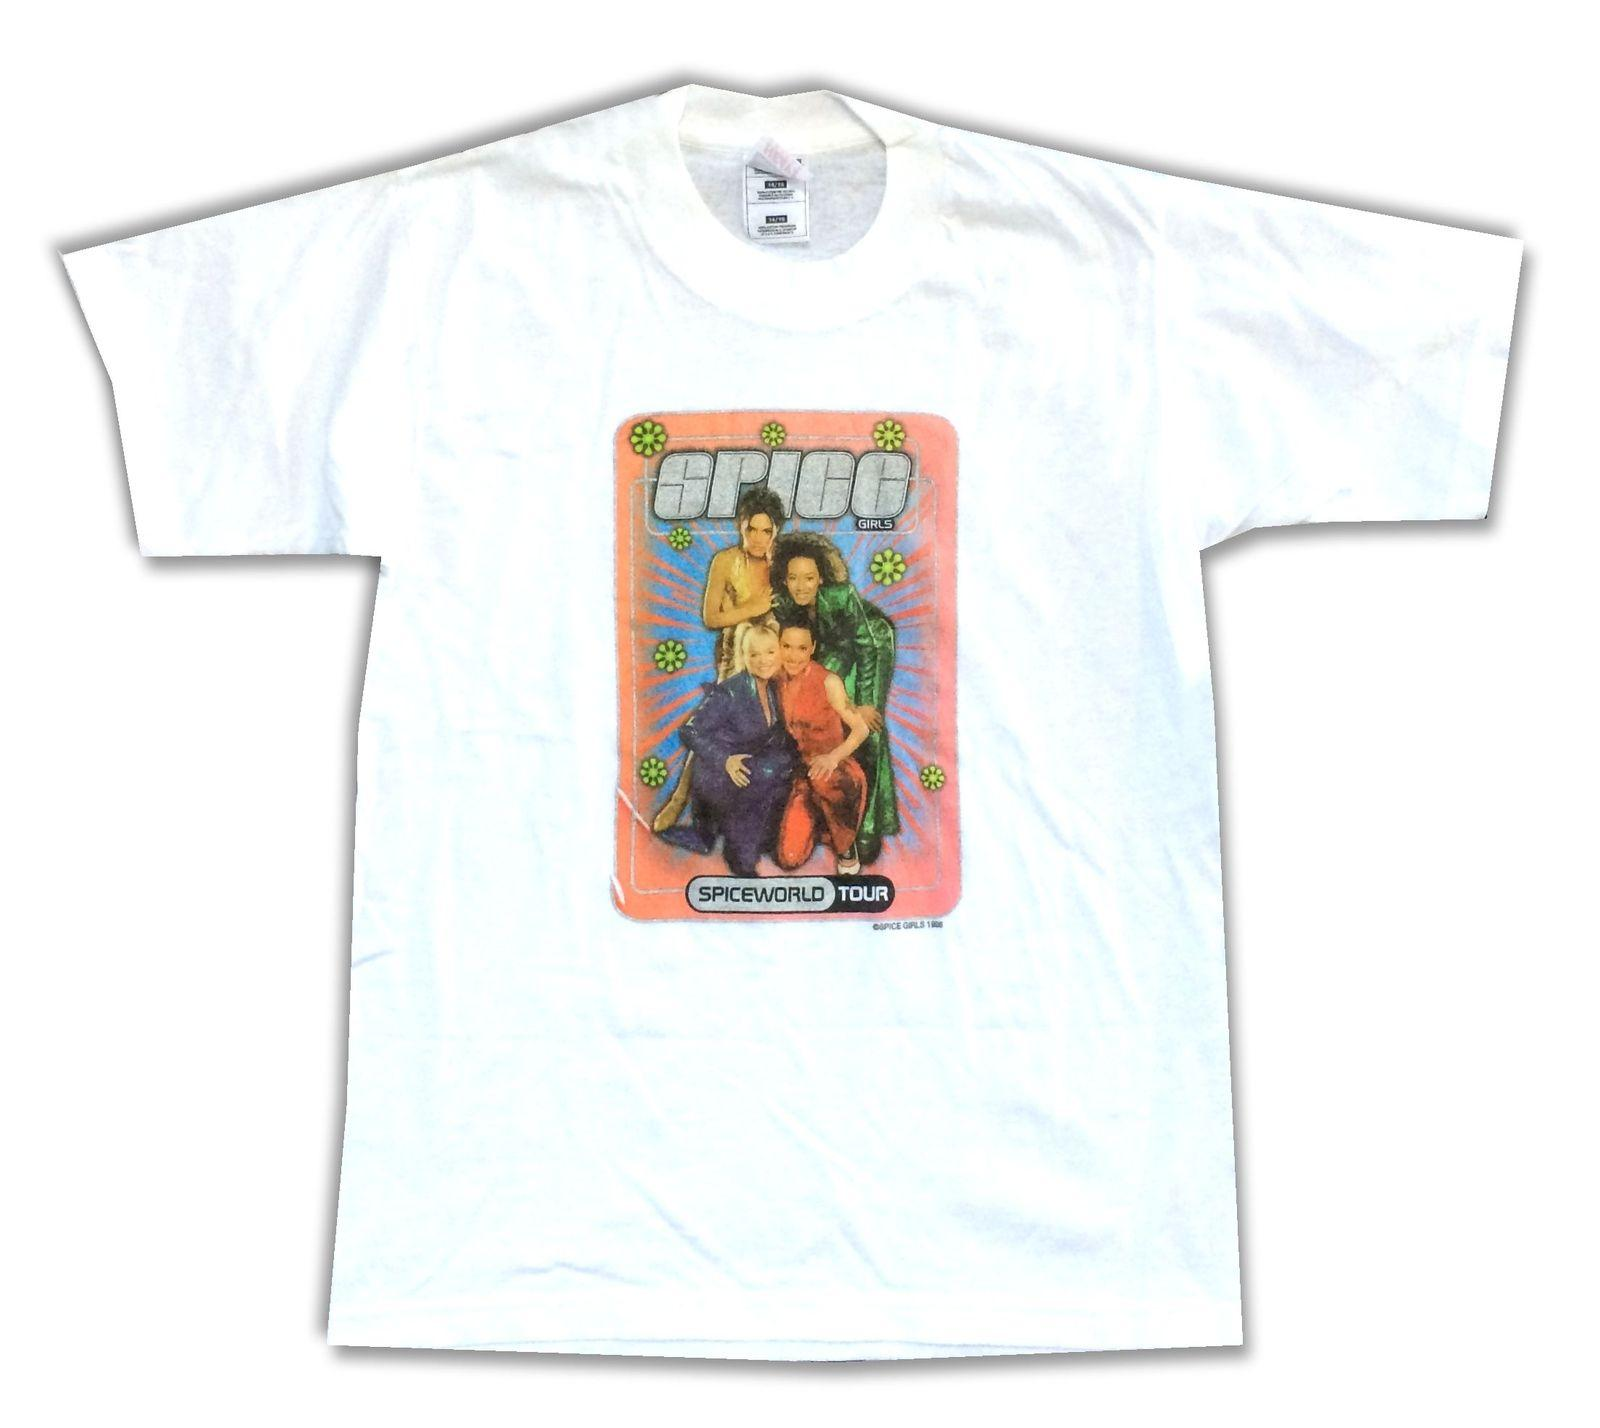 5dee10ce8 The Spice Girls Spice World Tour Kids Youth White T Shirt New Official  Merch Tees Custom Jersey t shirt